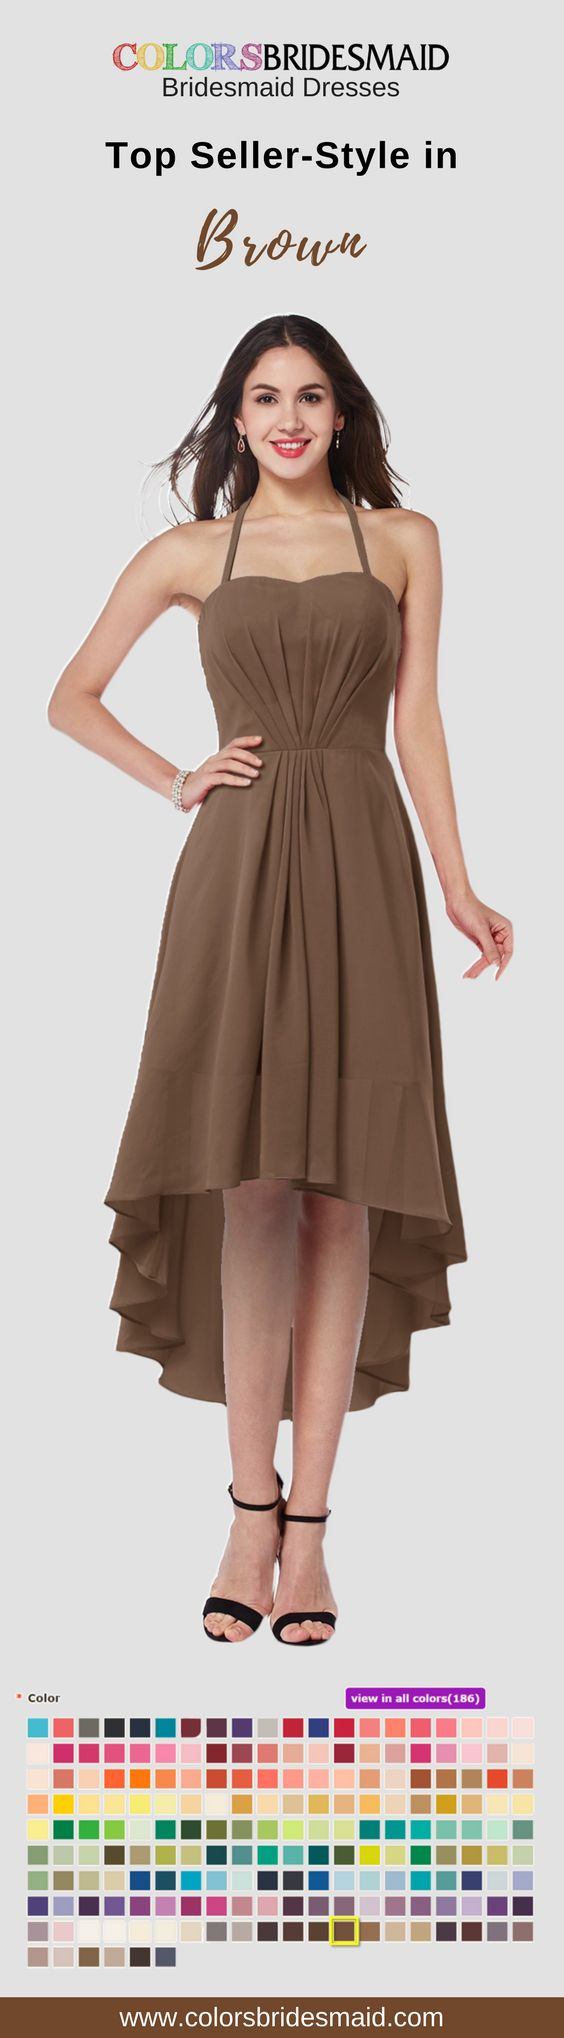 Looking for stunning short bridesmaid dresses in brown color? This dress with fashionable style, cheap price- under $100 and high quality has become the top seller. It can be custom made to all sizes.